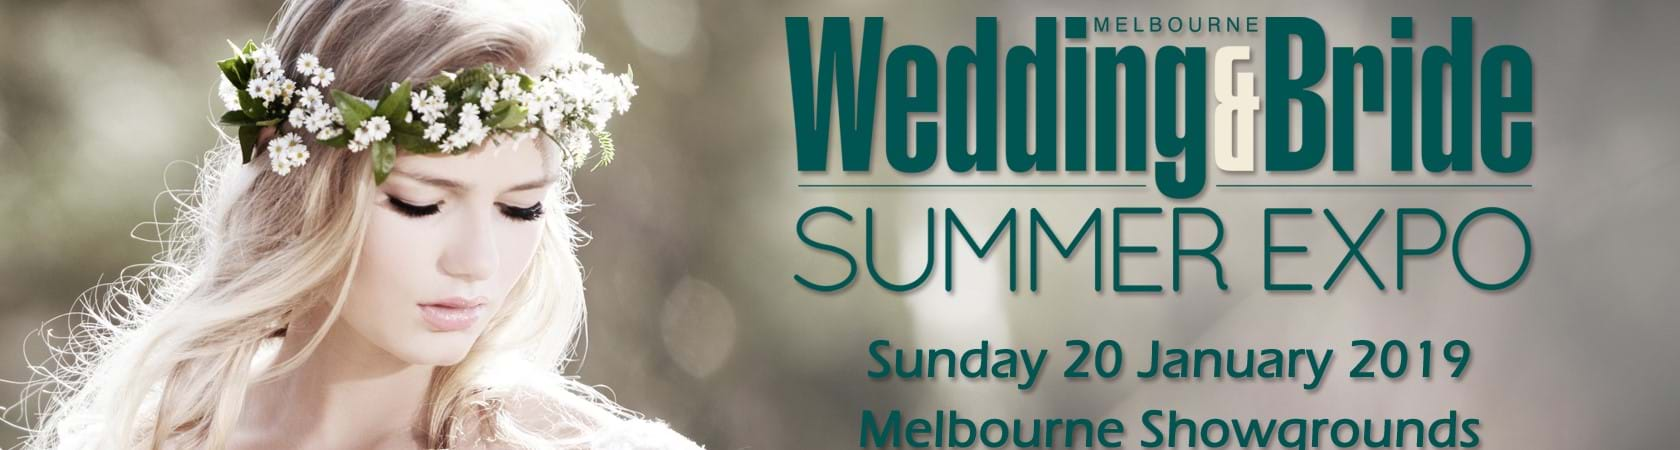 Melbourne Wedding & Bride Summer Bridal Expo